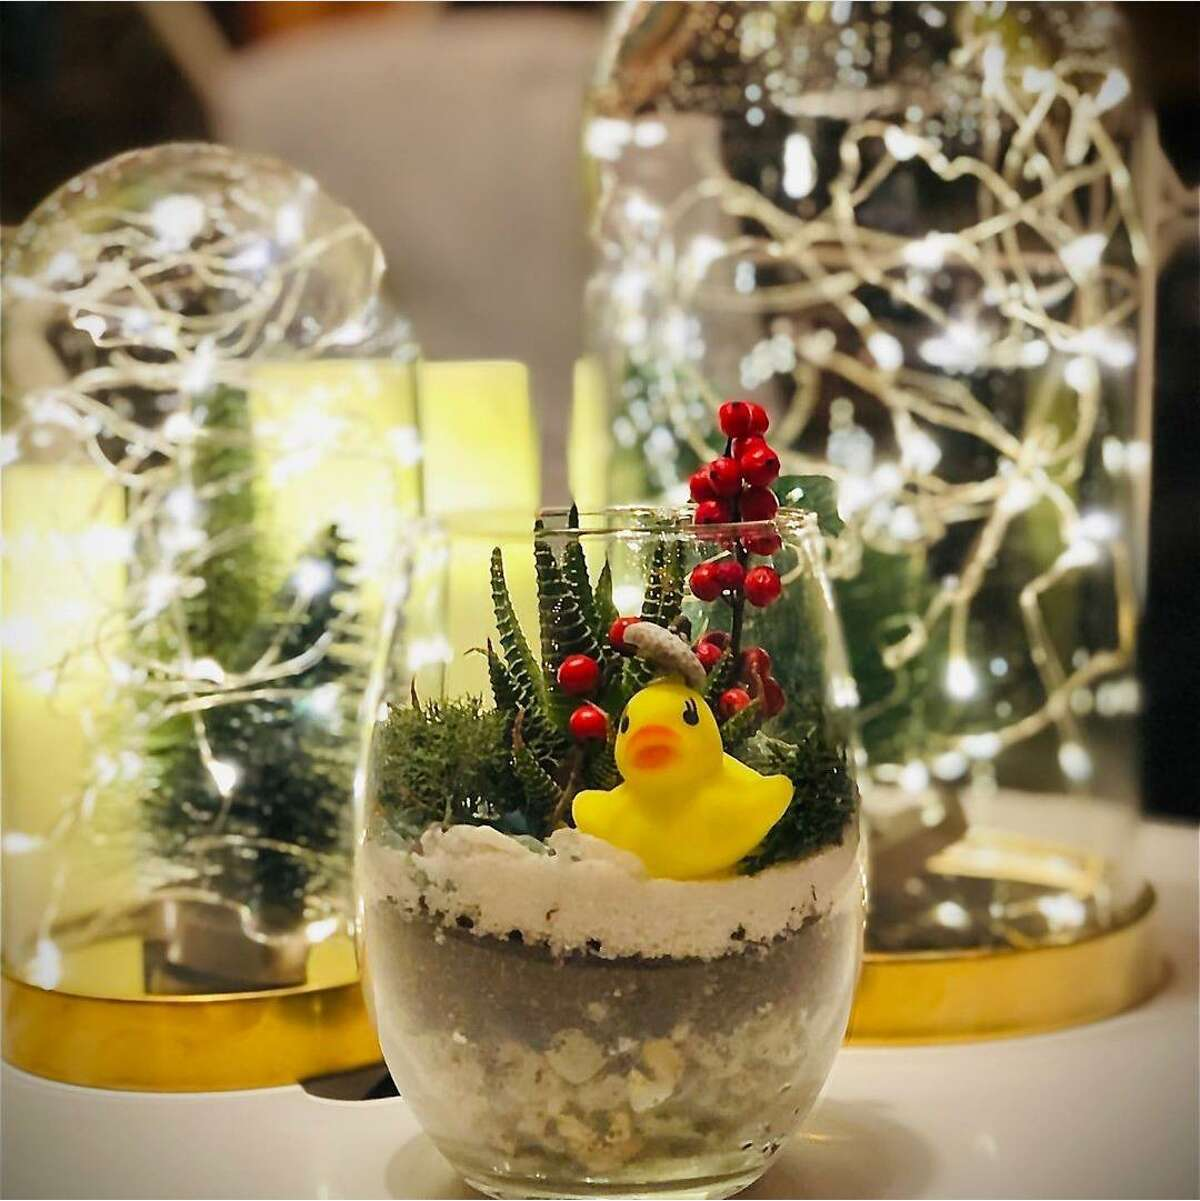 Indoor container gardening is all the rage recently, said PlantHer owner Jillian Shea of Middletown. Each can be decorated in most any type of vessel.